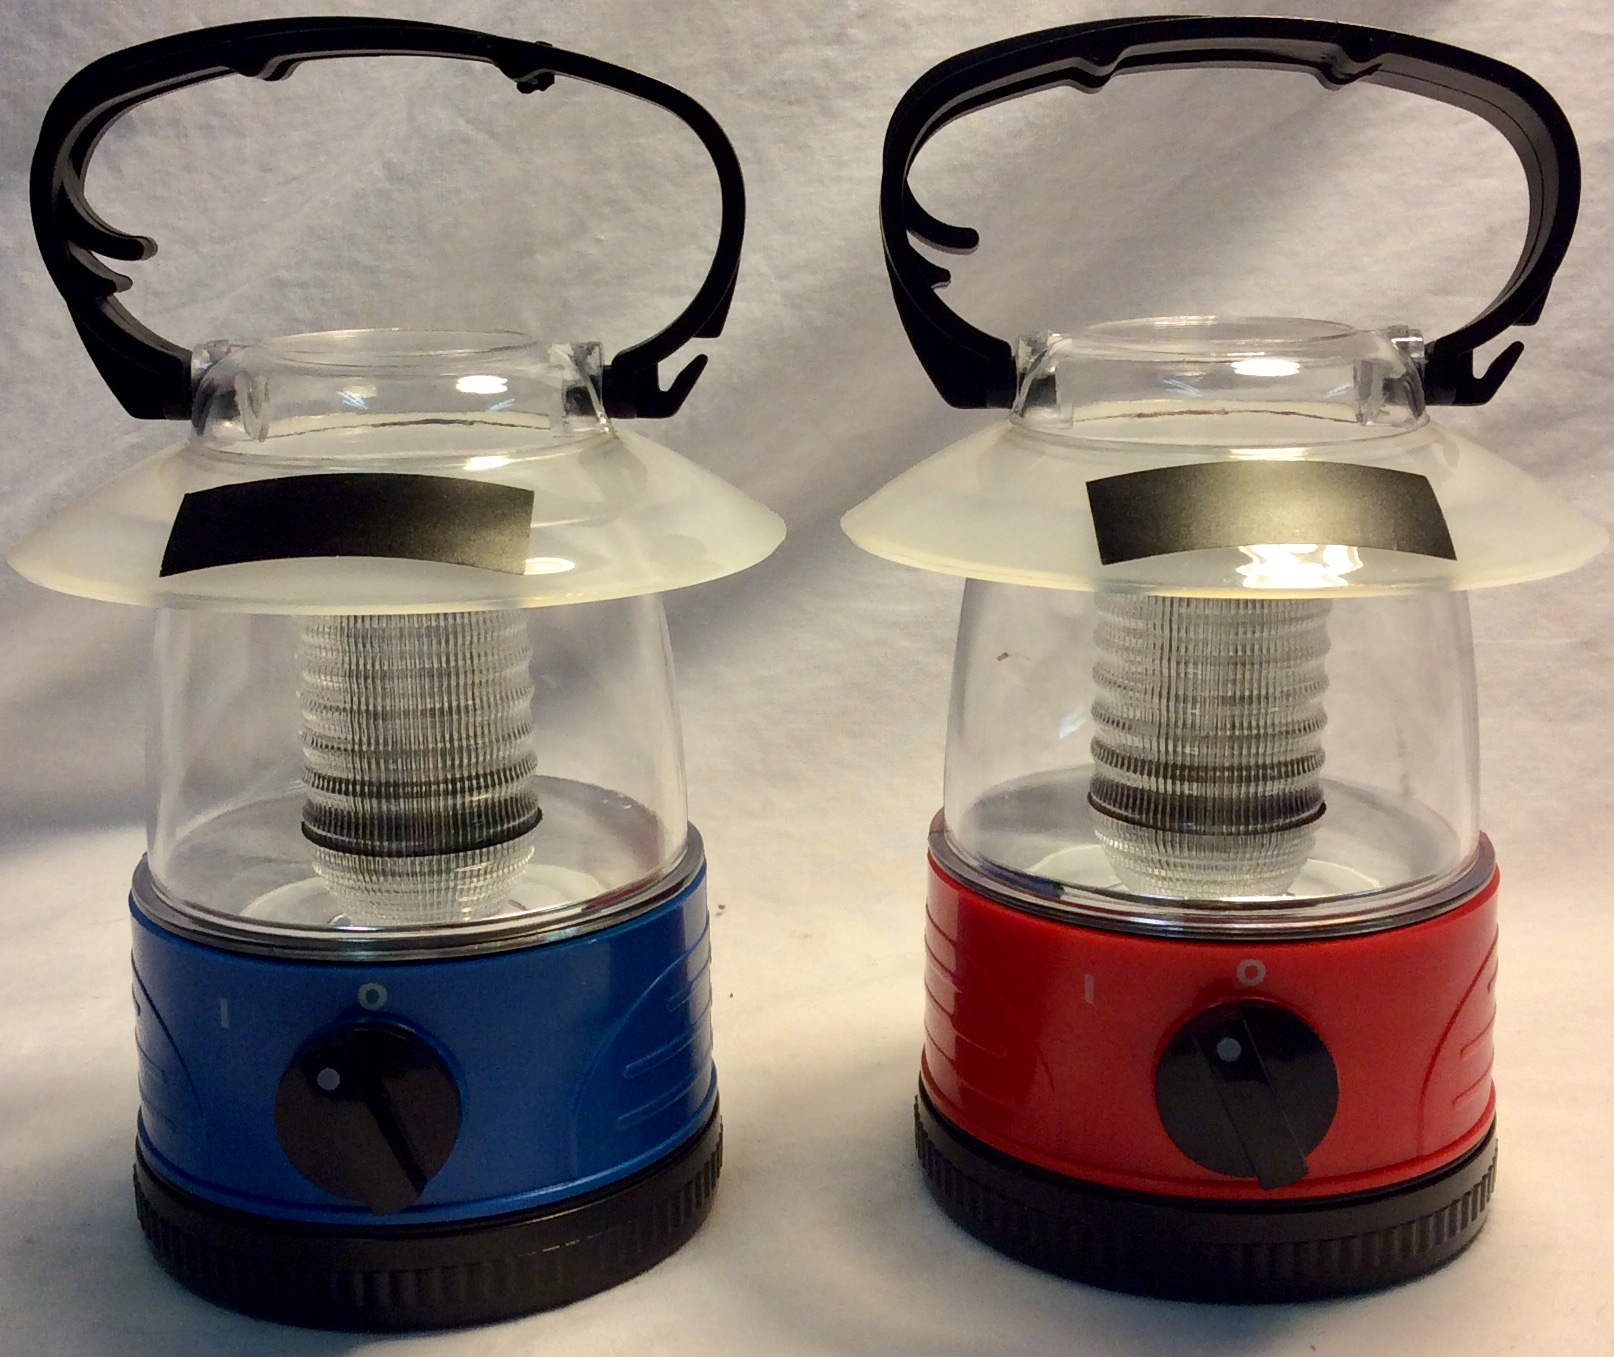 Outbound Small plastic lantern